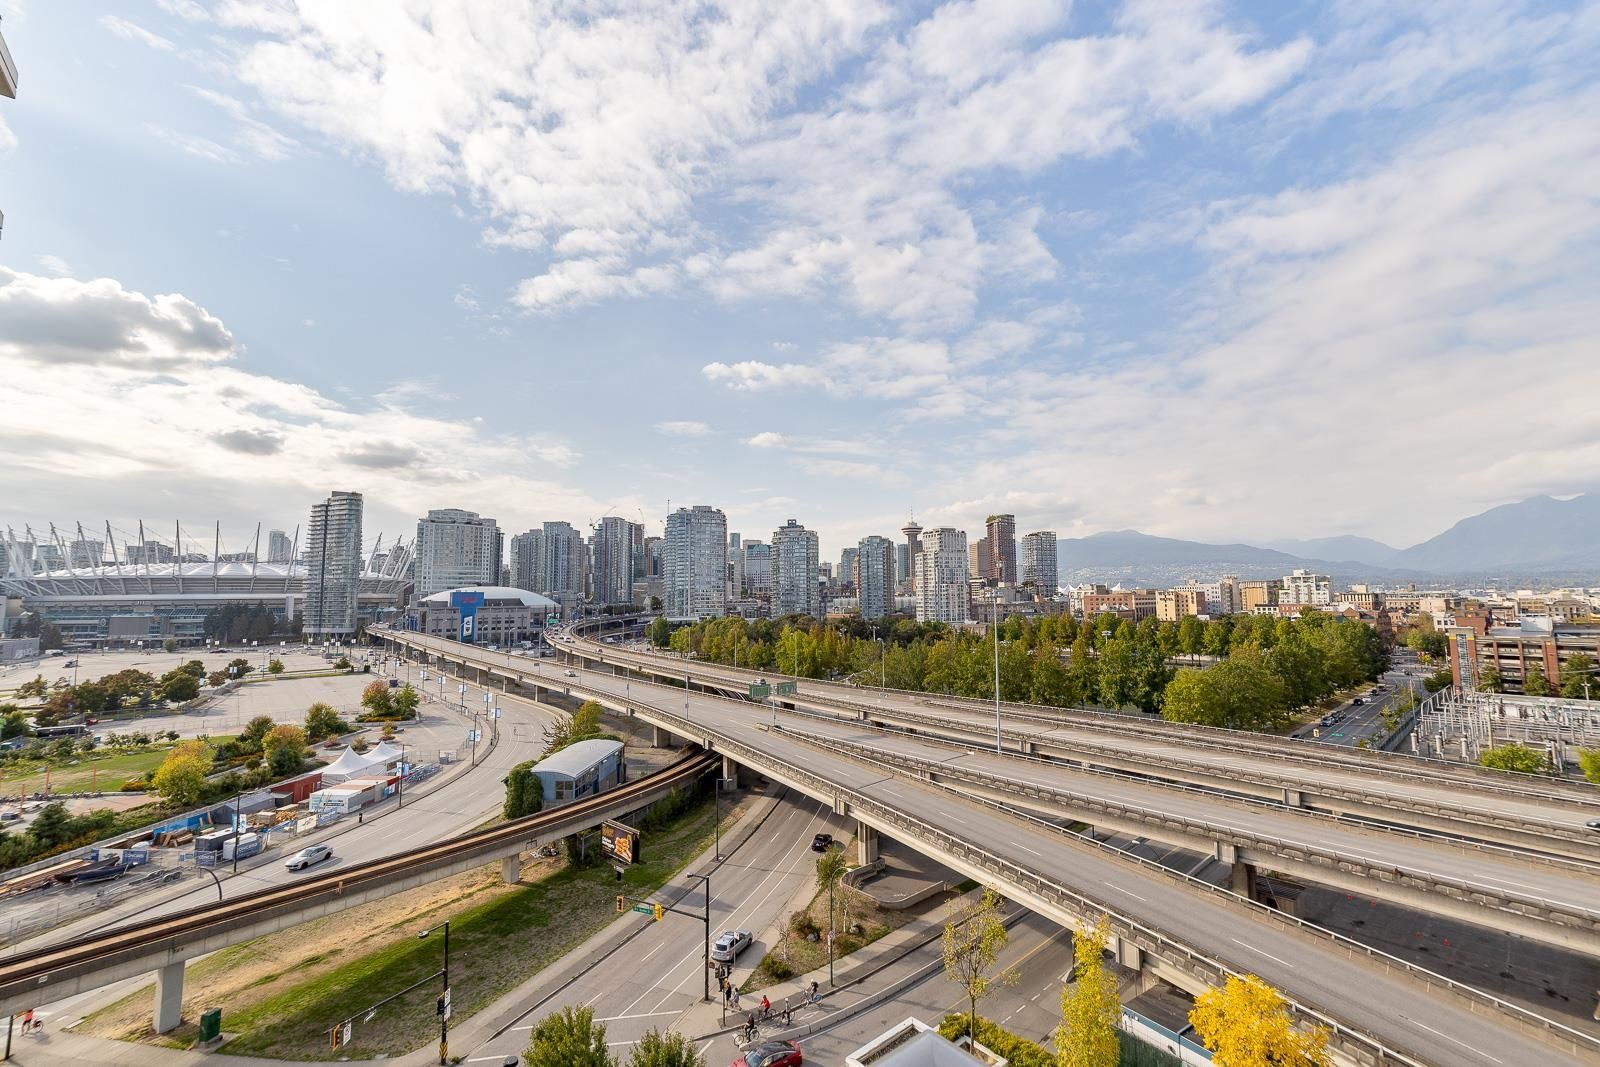 """Main Photo: 1101 125 MILROSS Avenue in Vancouver: Downtown VE Condo for sale in """"Creekside"""" (Vancouver East)  : MLS®# R2617718"""